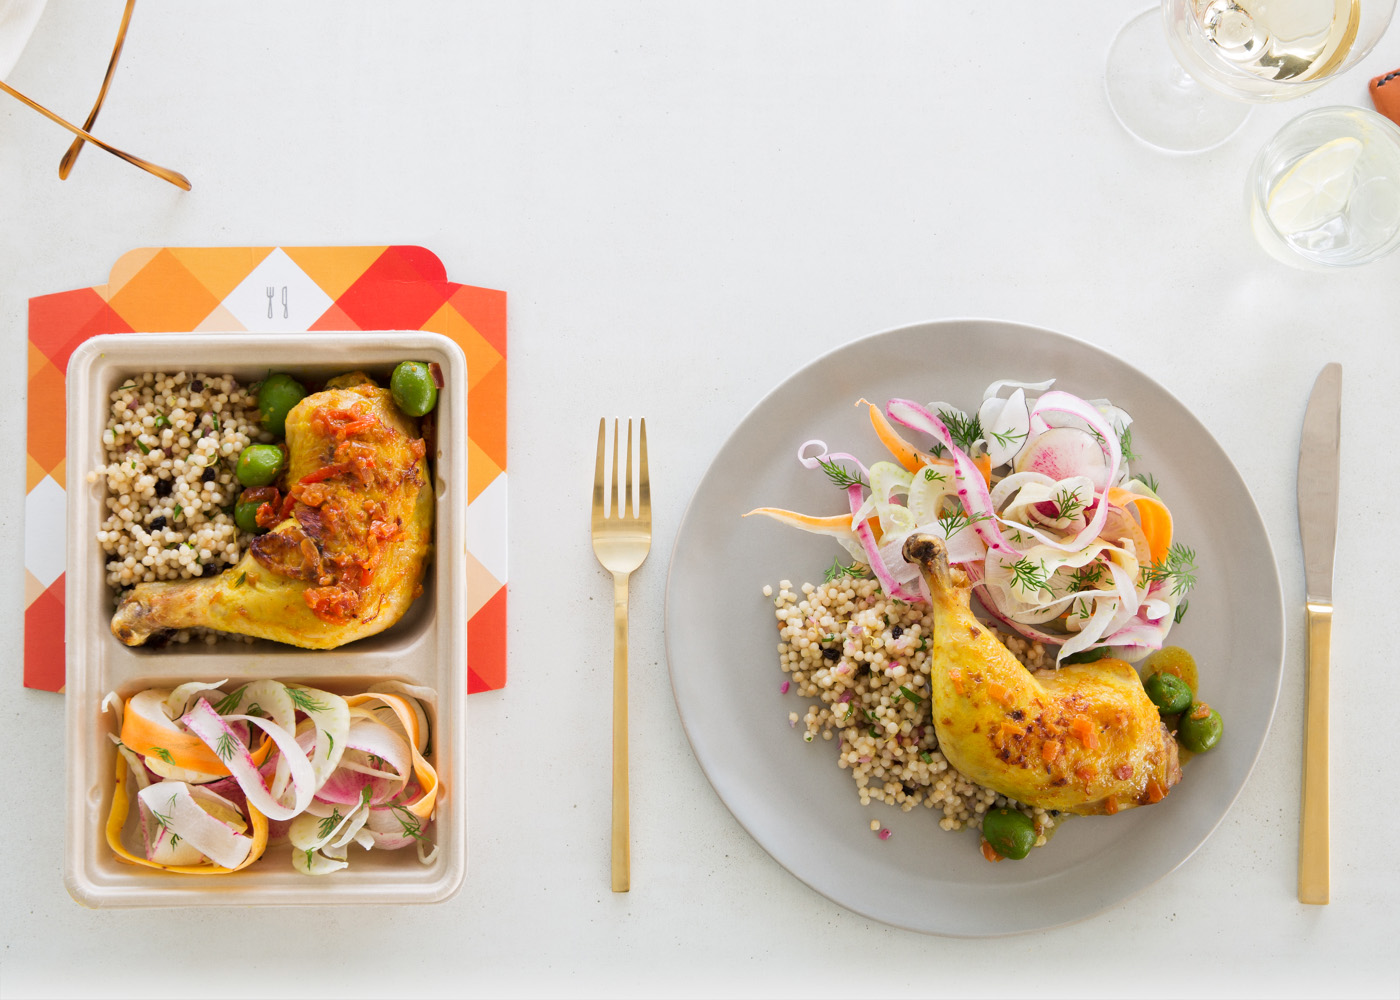 Munchery - Angelica In The City